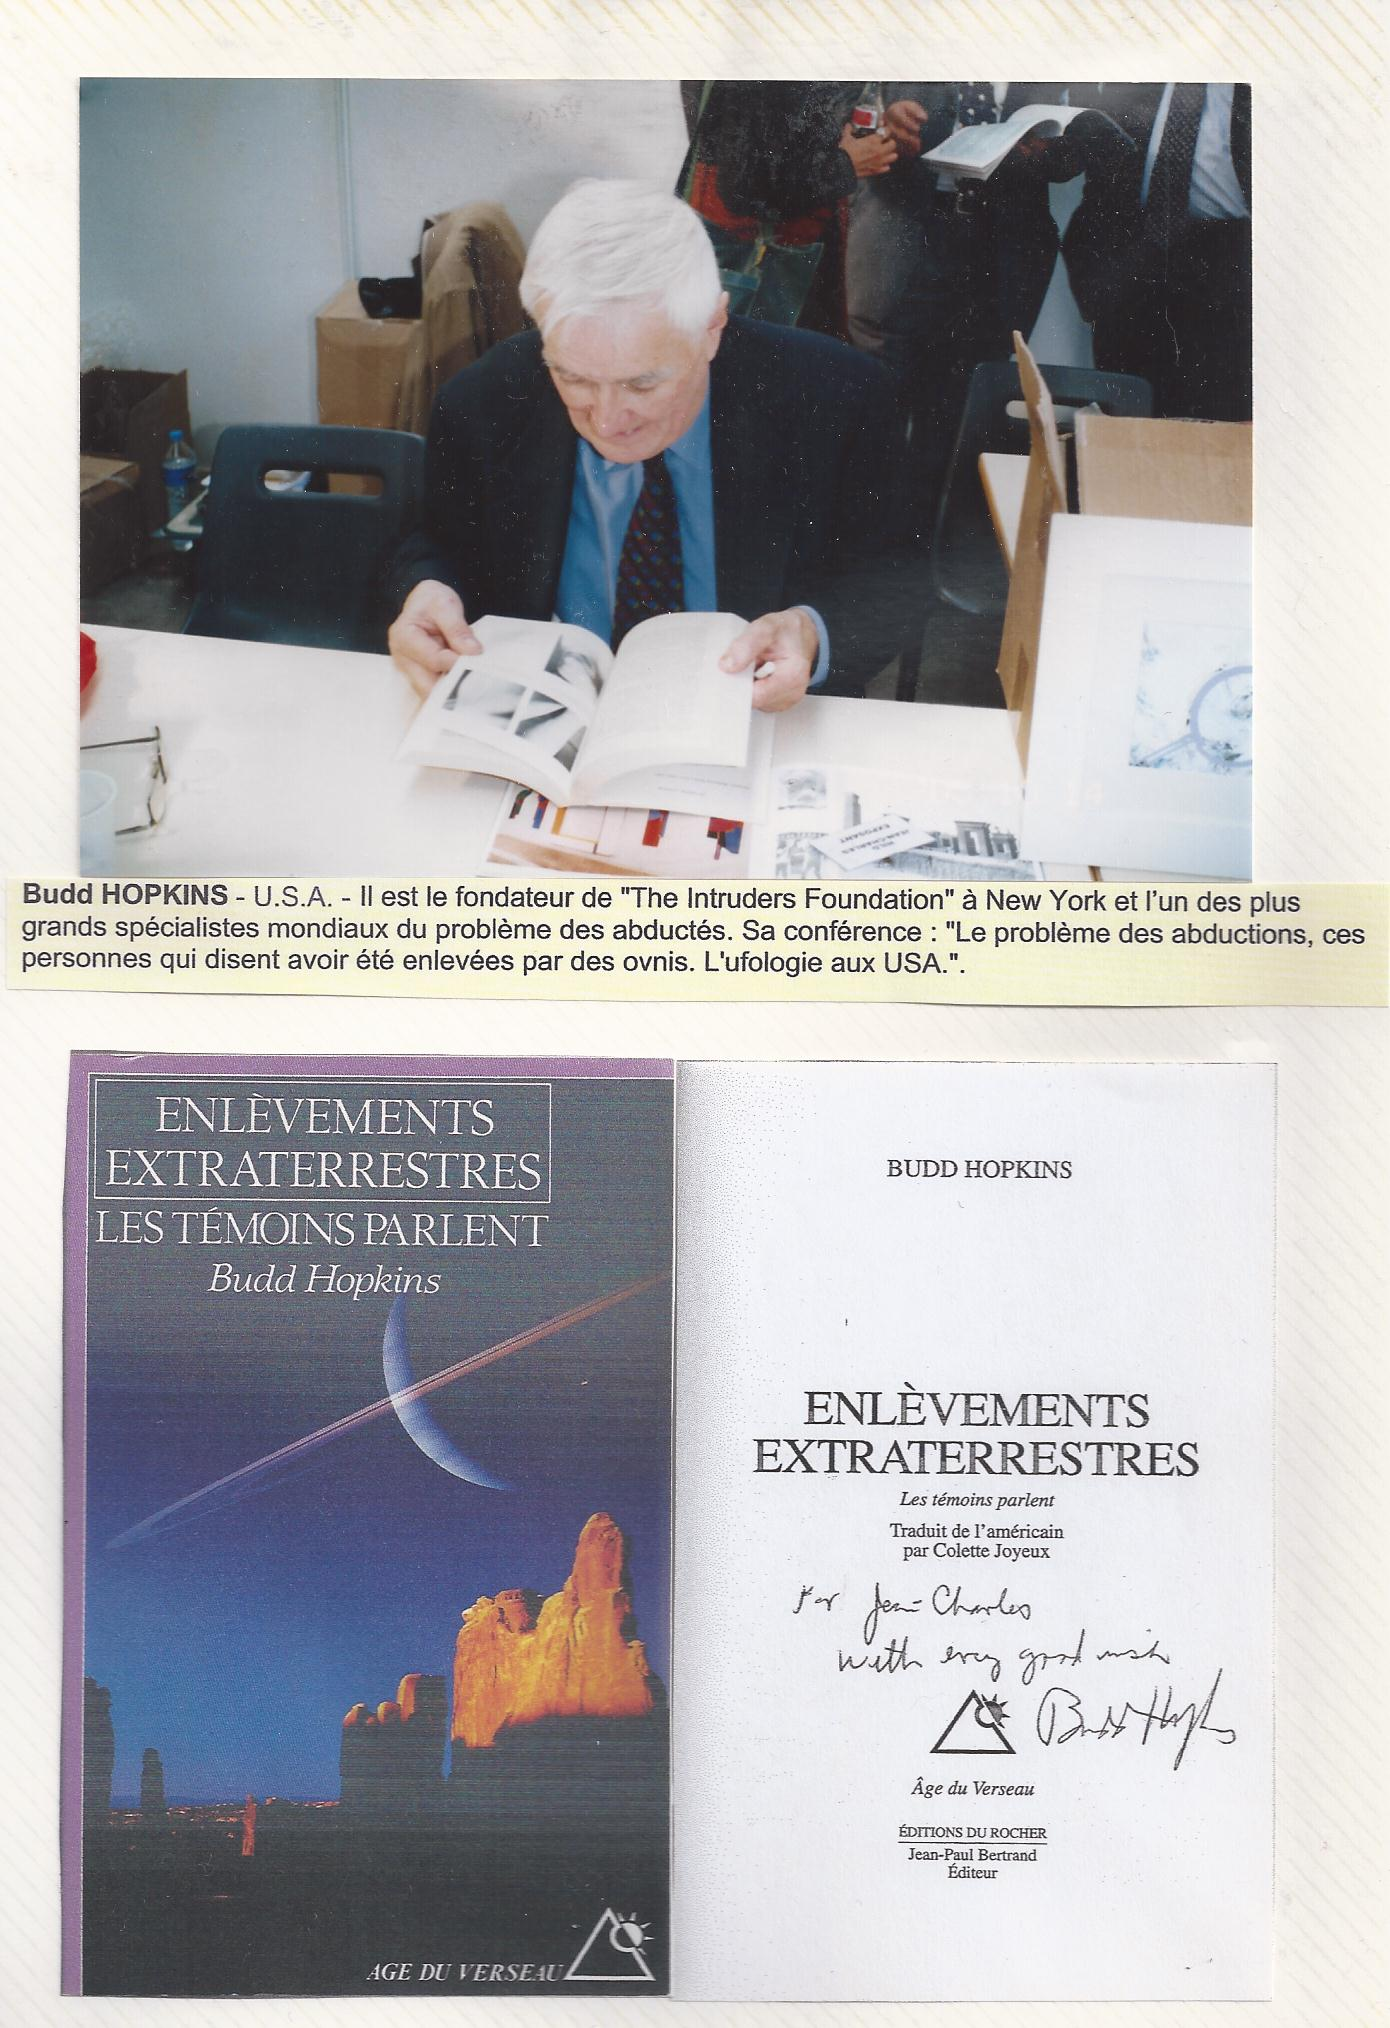 Budd HOPKINS - 15 octobre 2005